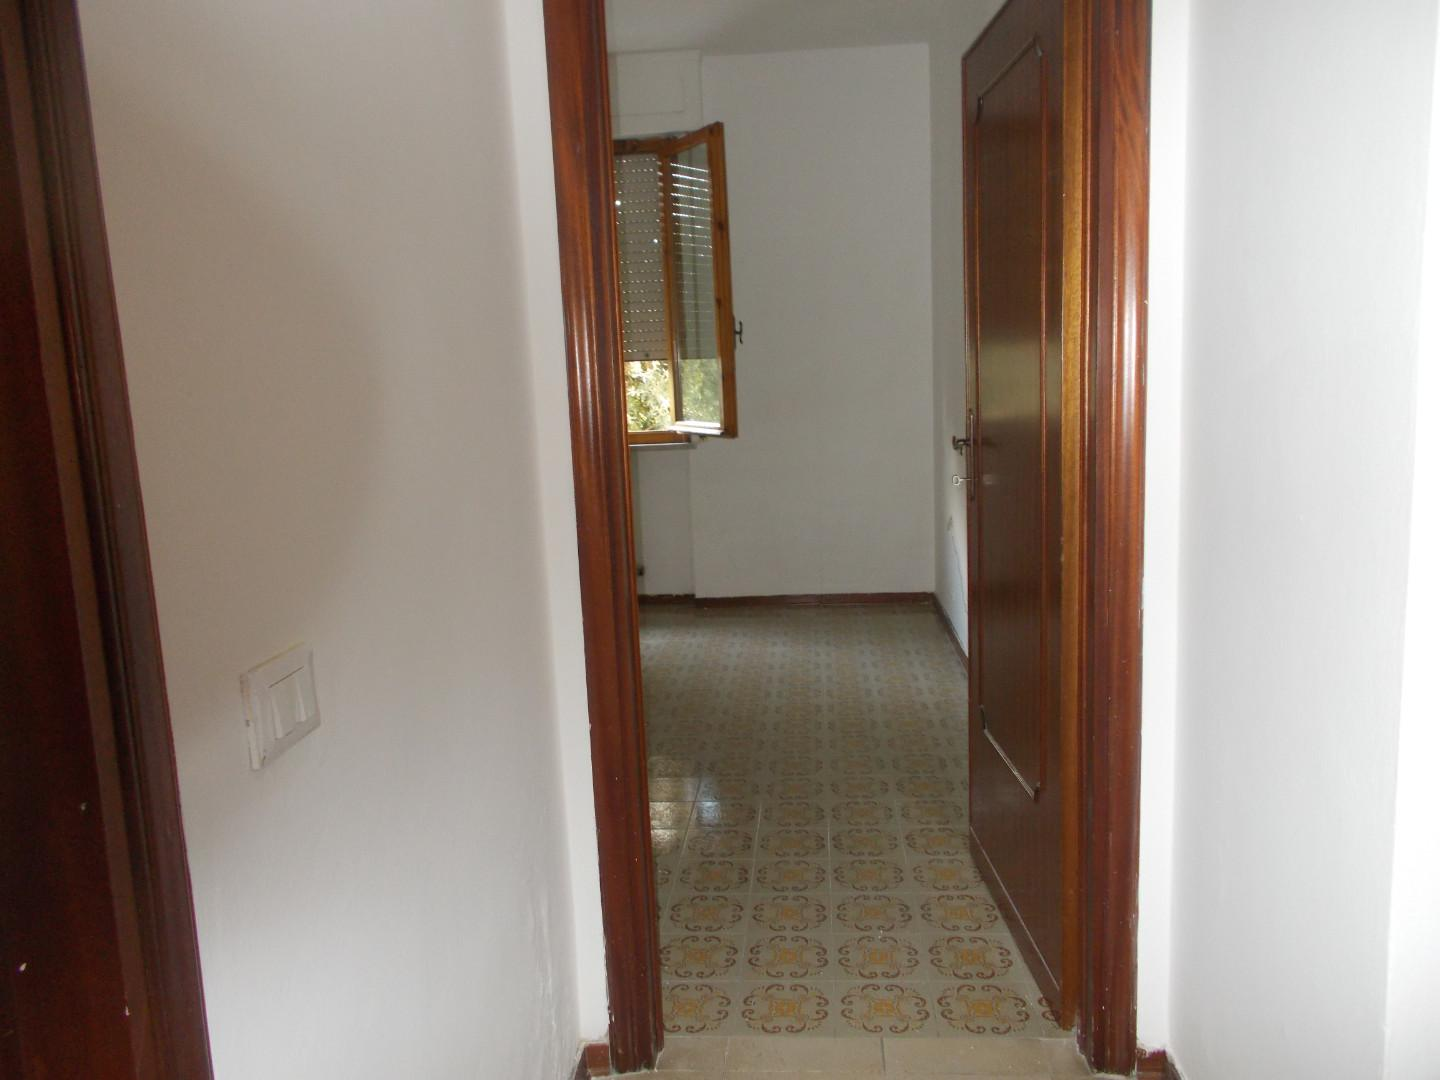 Apartment in Casciana Terme Lari